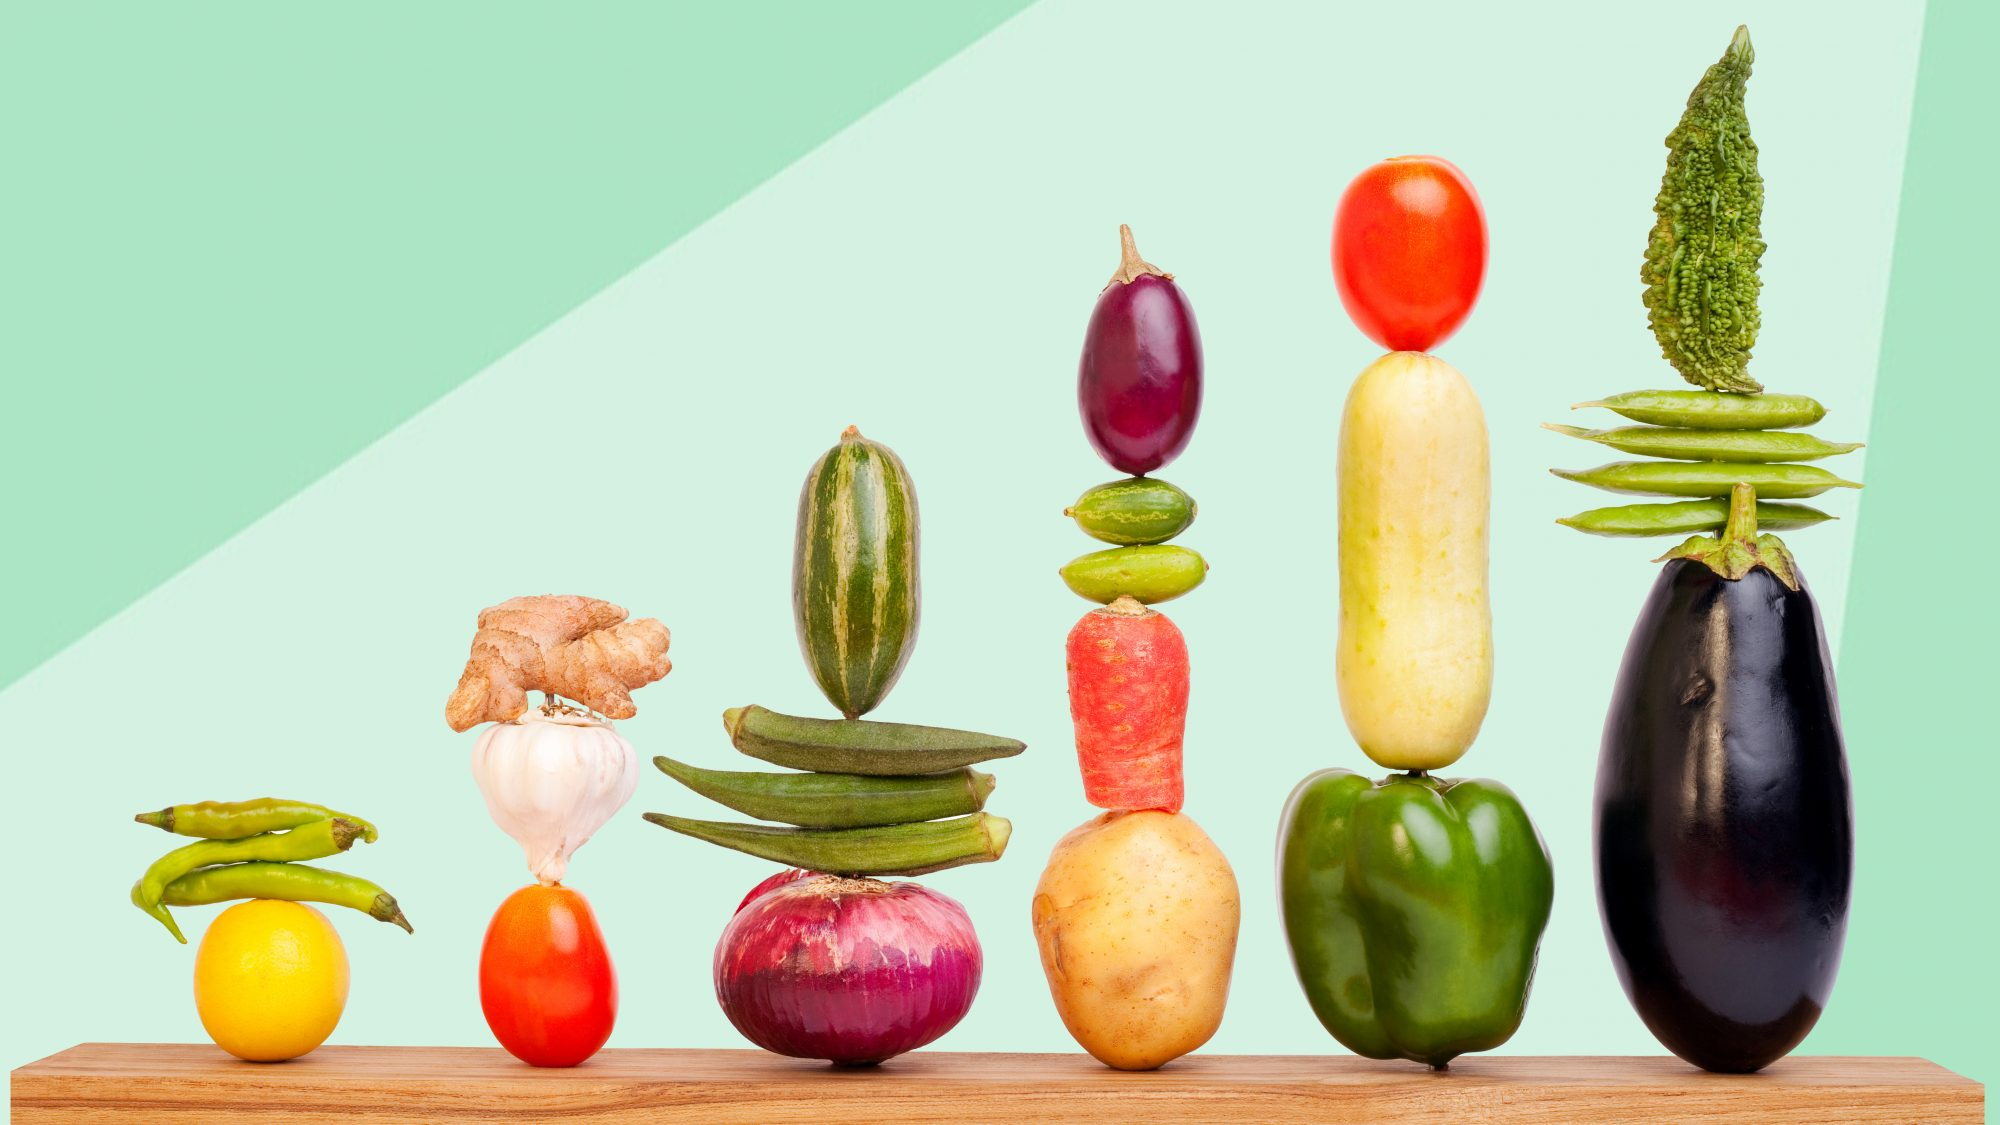 how stacks of fruit and vegetables: to waste less fresh food